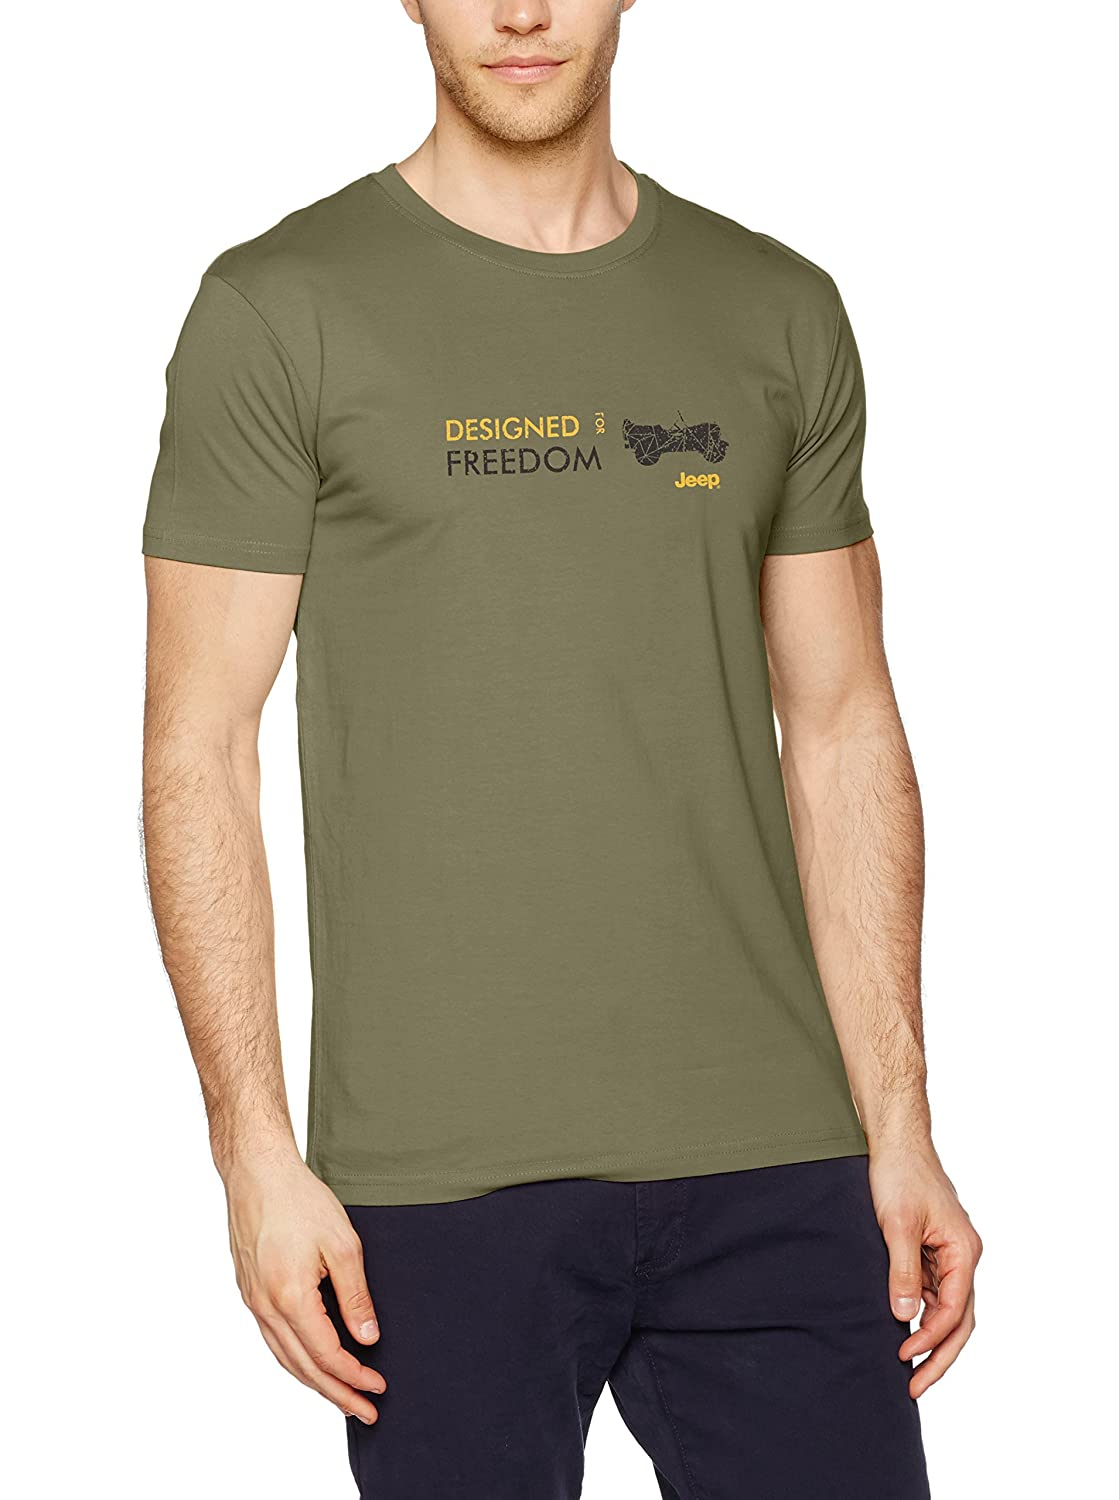 Jeep - Camiseta Willys J7S - Designed for Freedom J7S Willys - Deep Lichen - XL 50a5e1